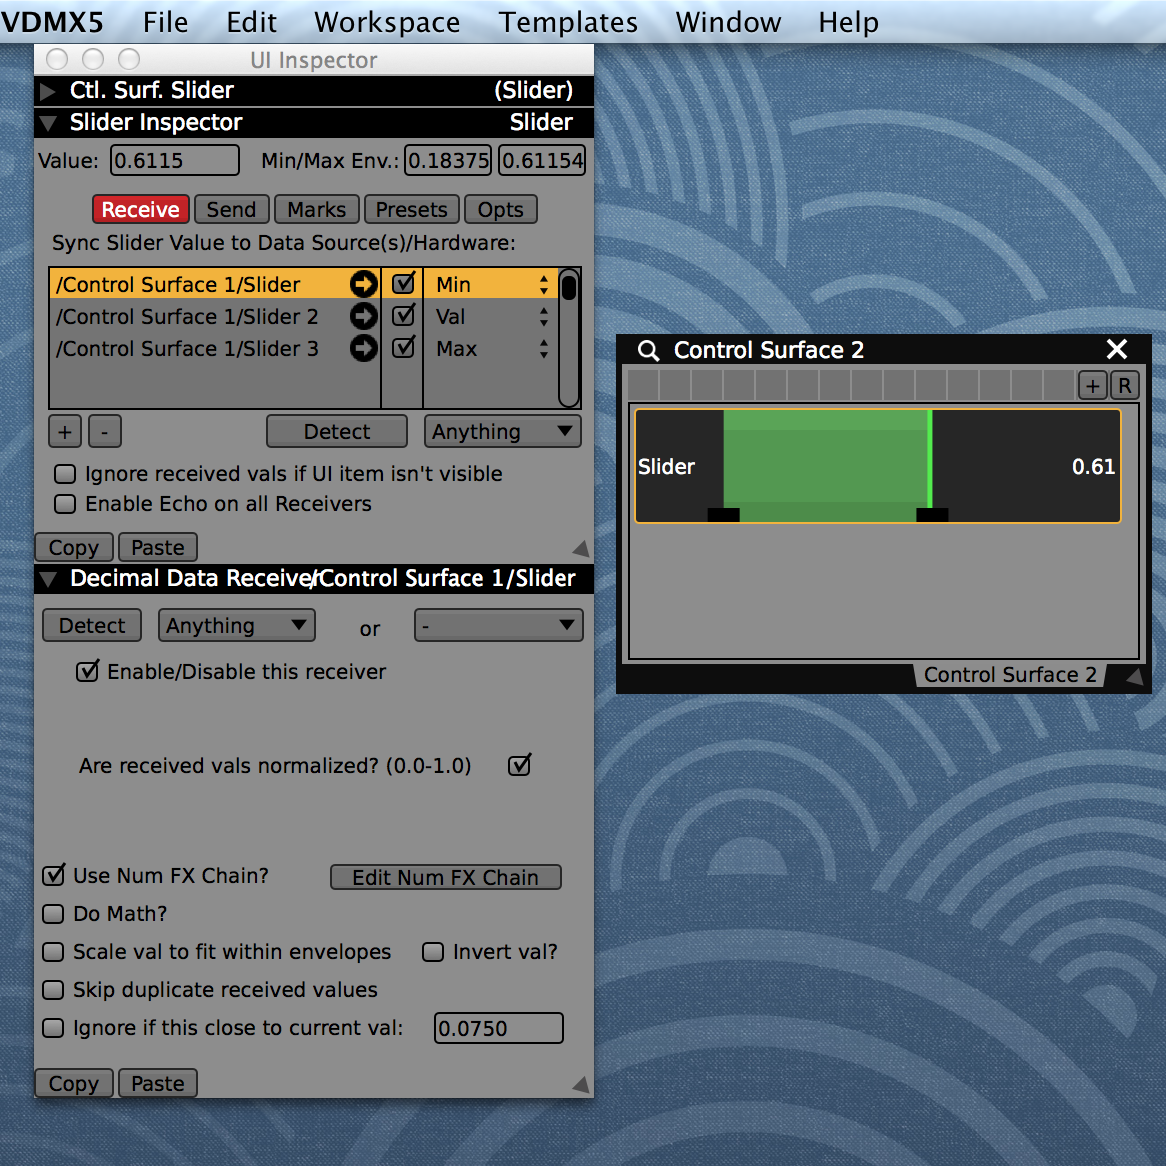 Click on a slider to inspect it in the UI Inspector. Use the '+' button to create a new receiver.